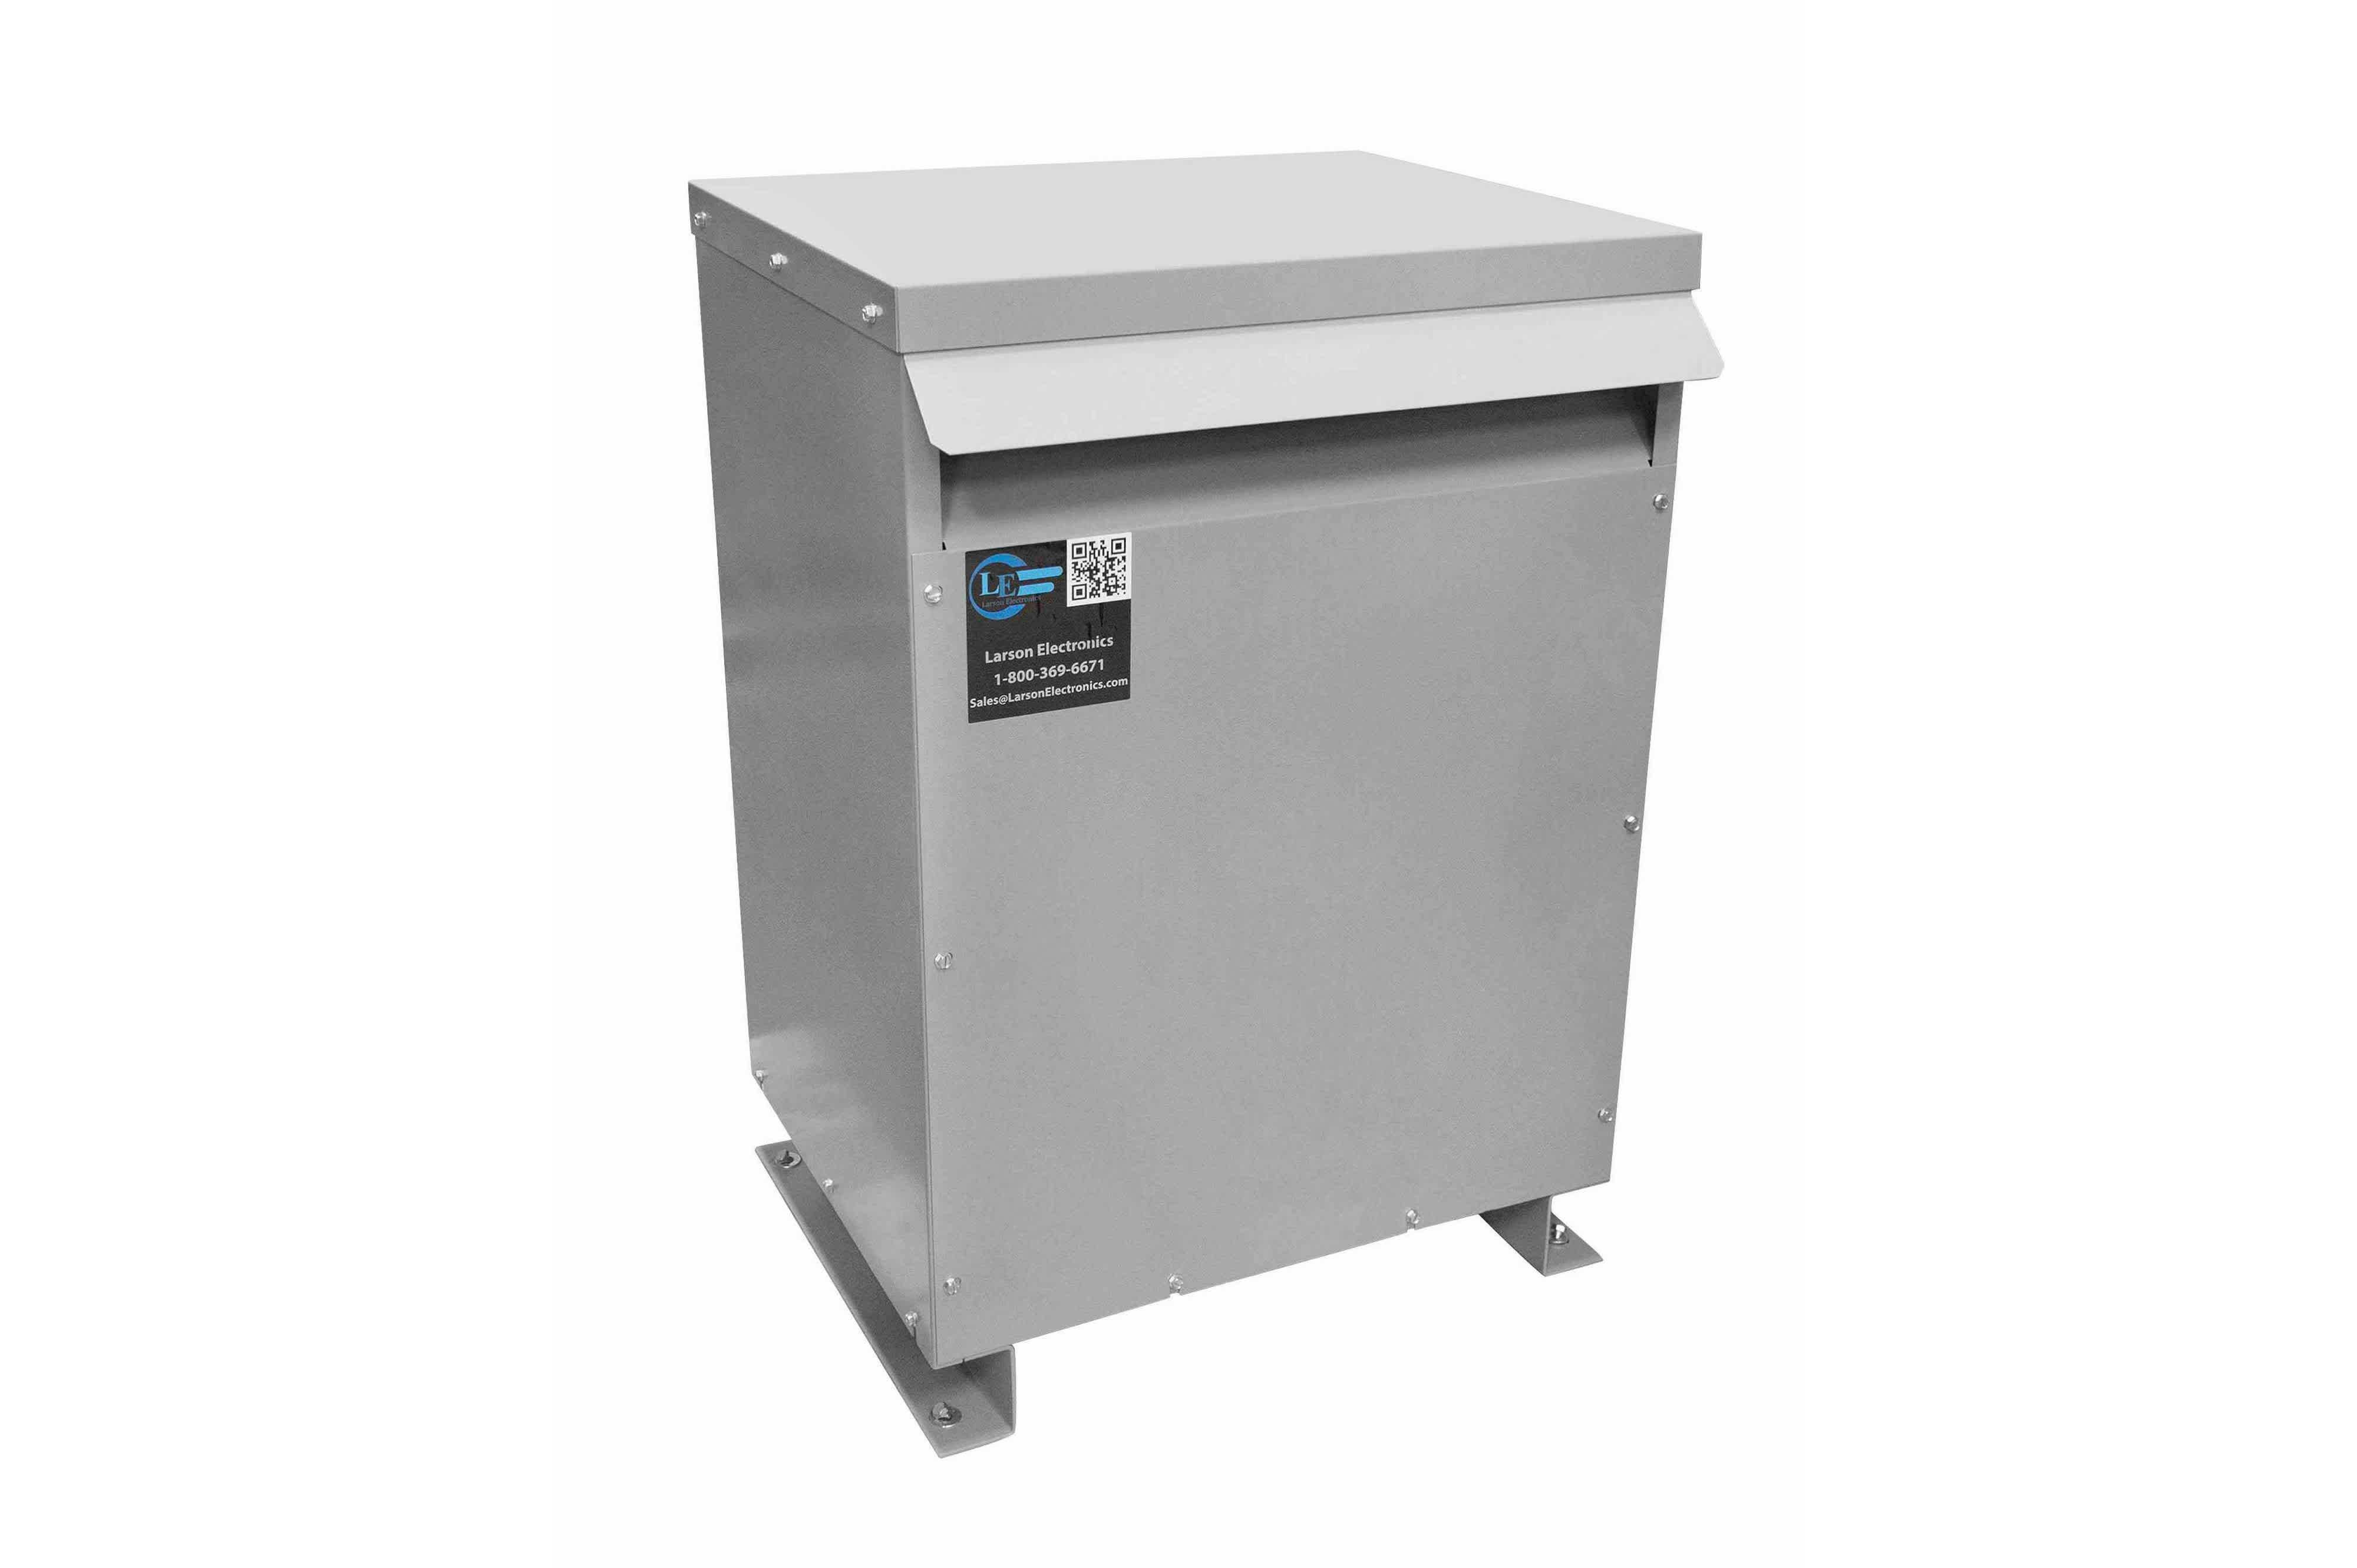 900 kVA 3PH Isolation Transformer, 600V Wye Primary, 480V Delta Secondary, N3R, Ventilated, 60 Hz